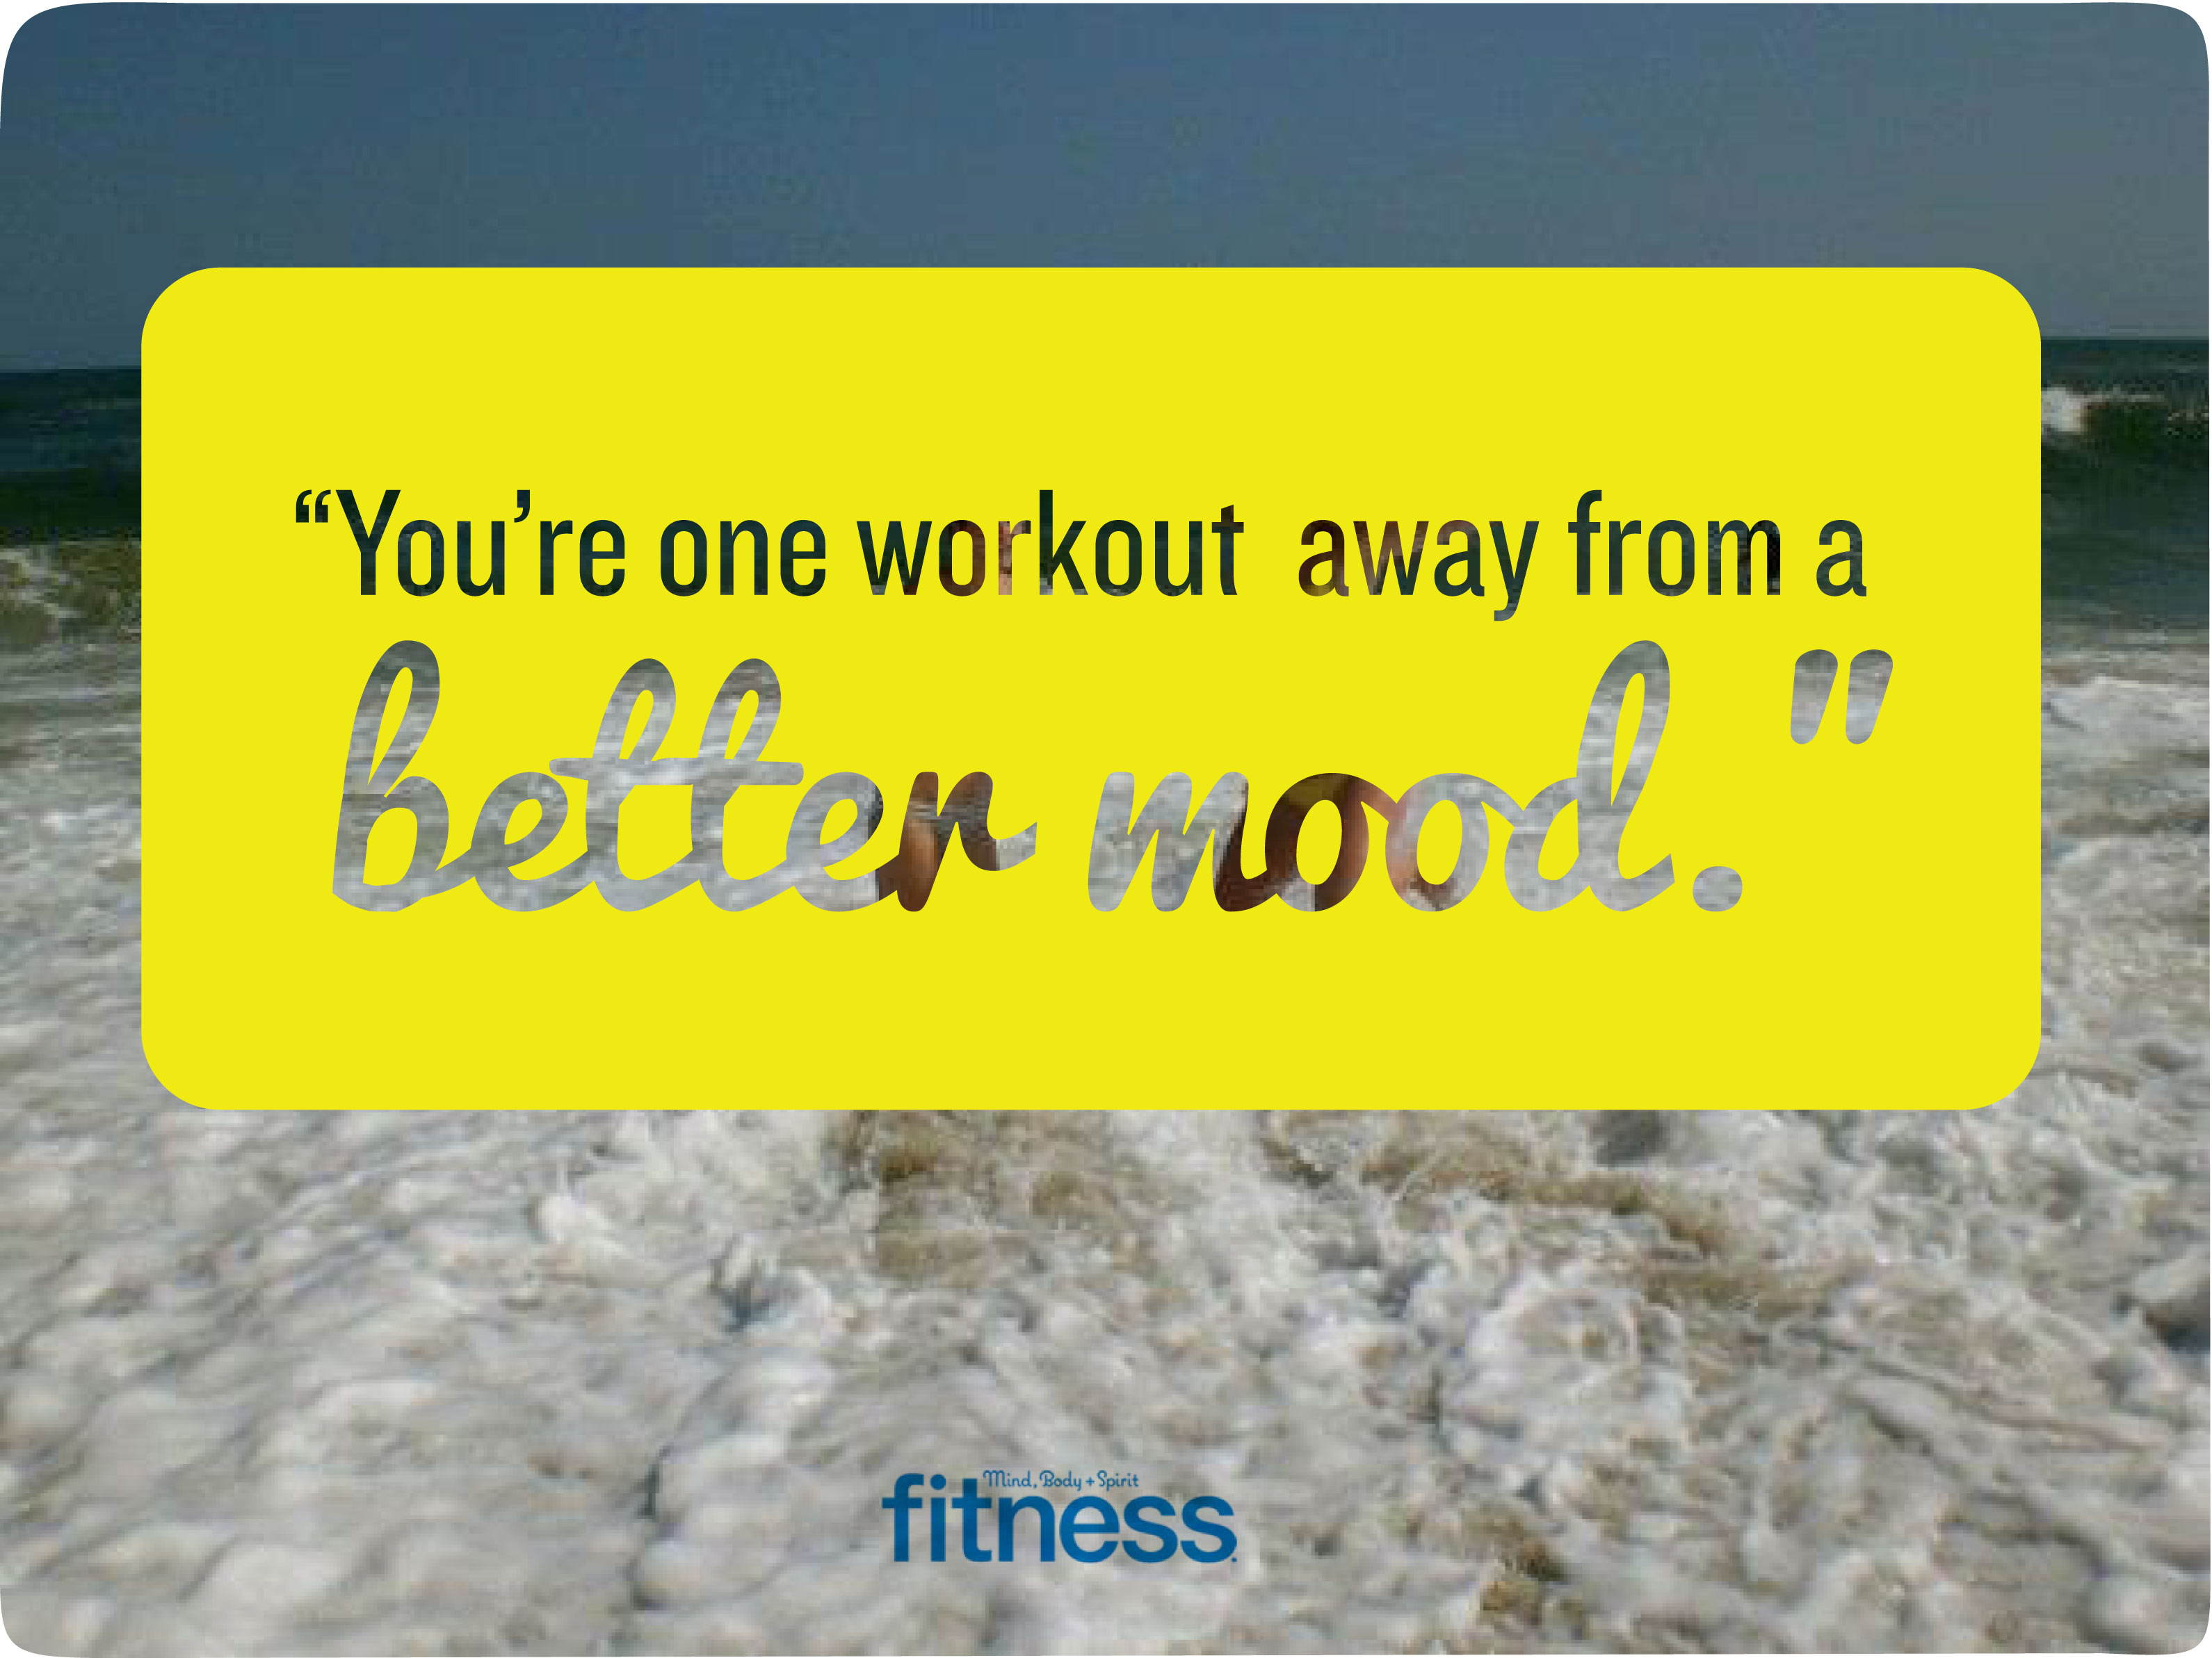 images of work out quotes wallpaper